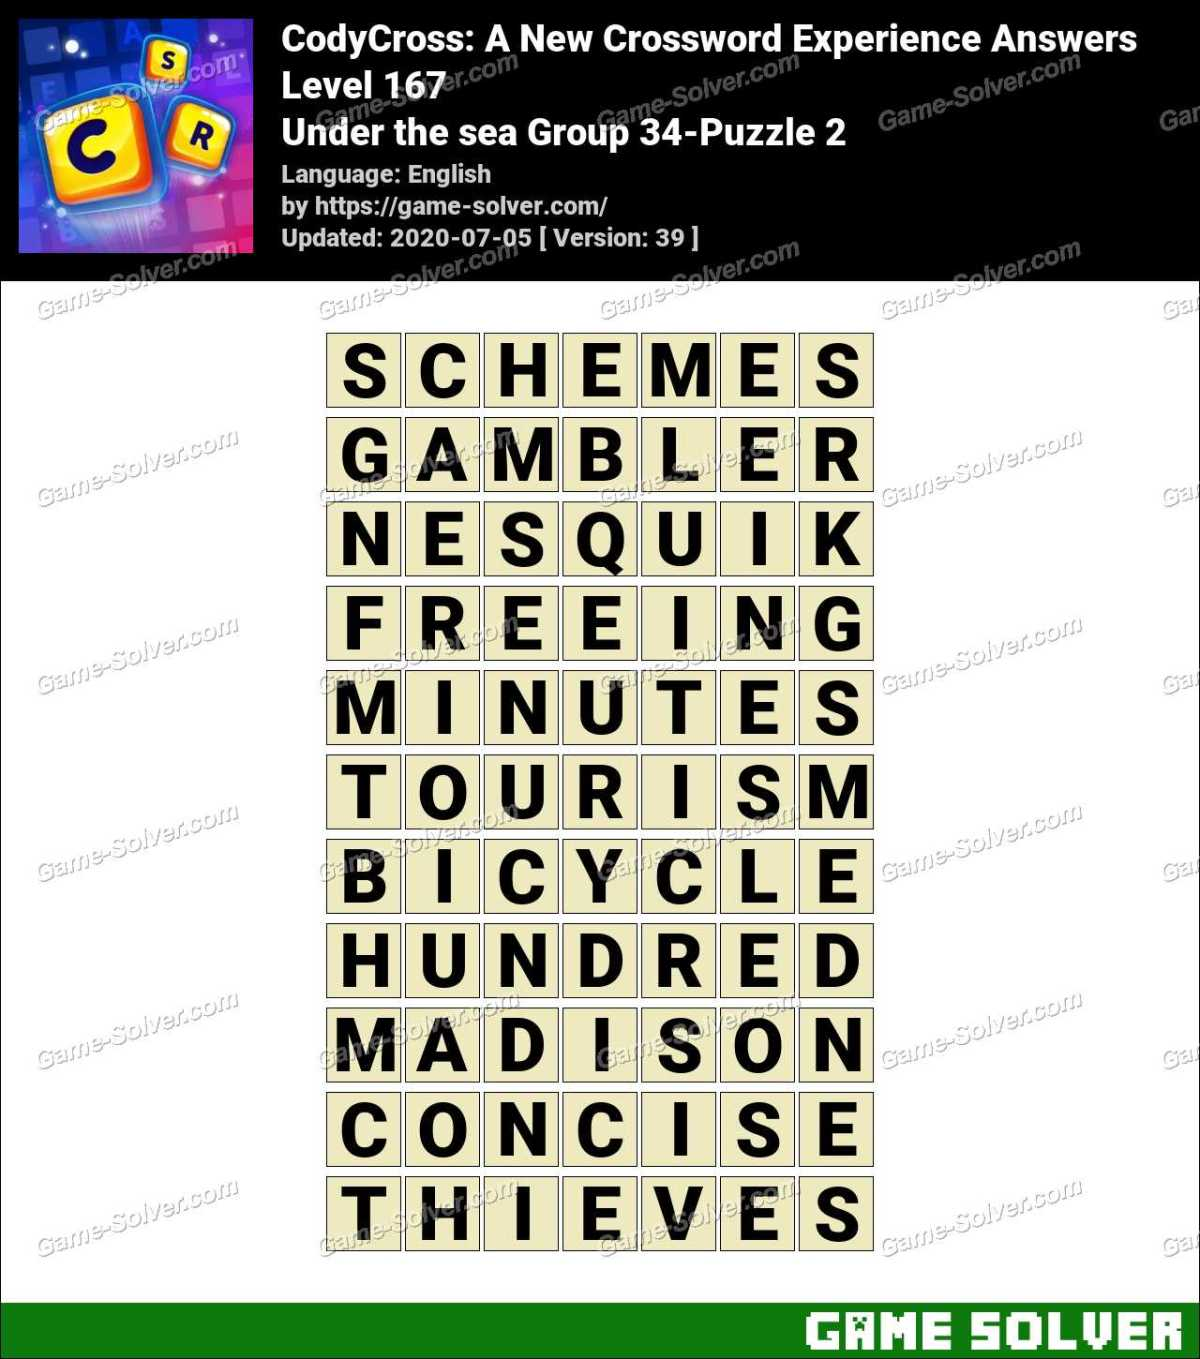 CodyCross Under the sea Group 34-Puzzle 2 Answers